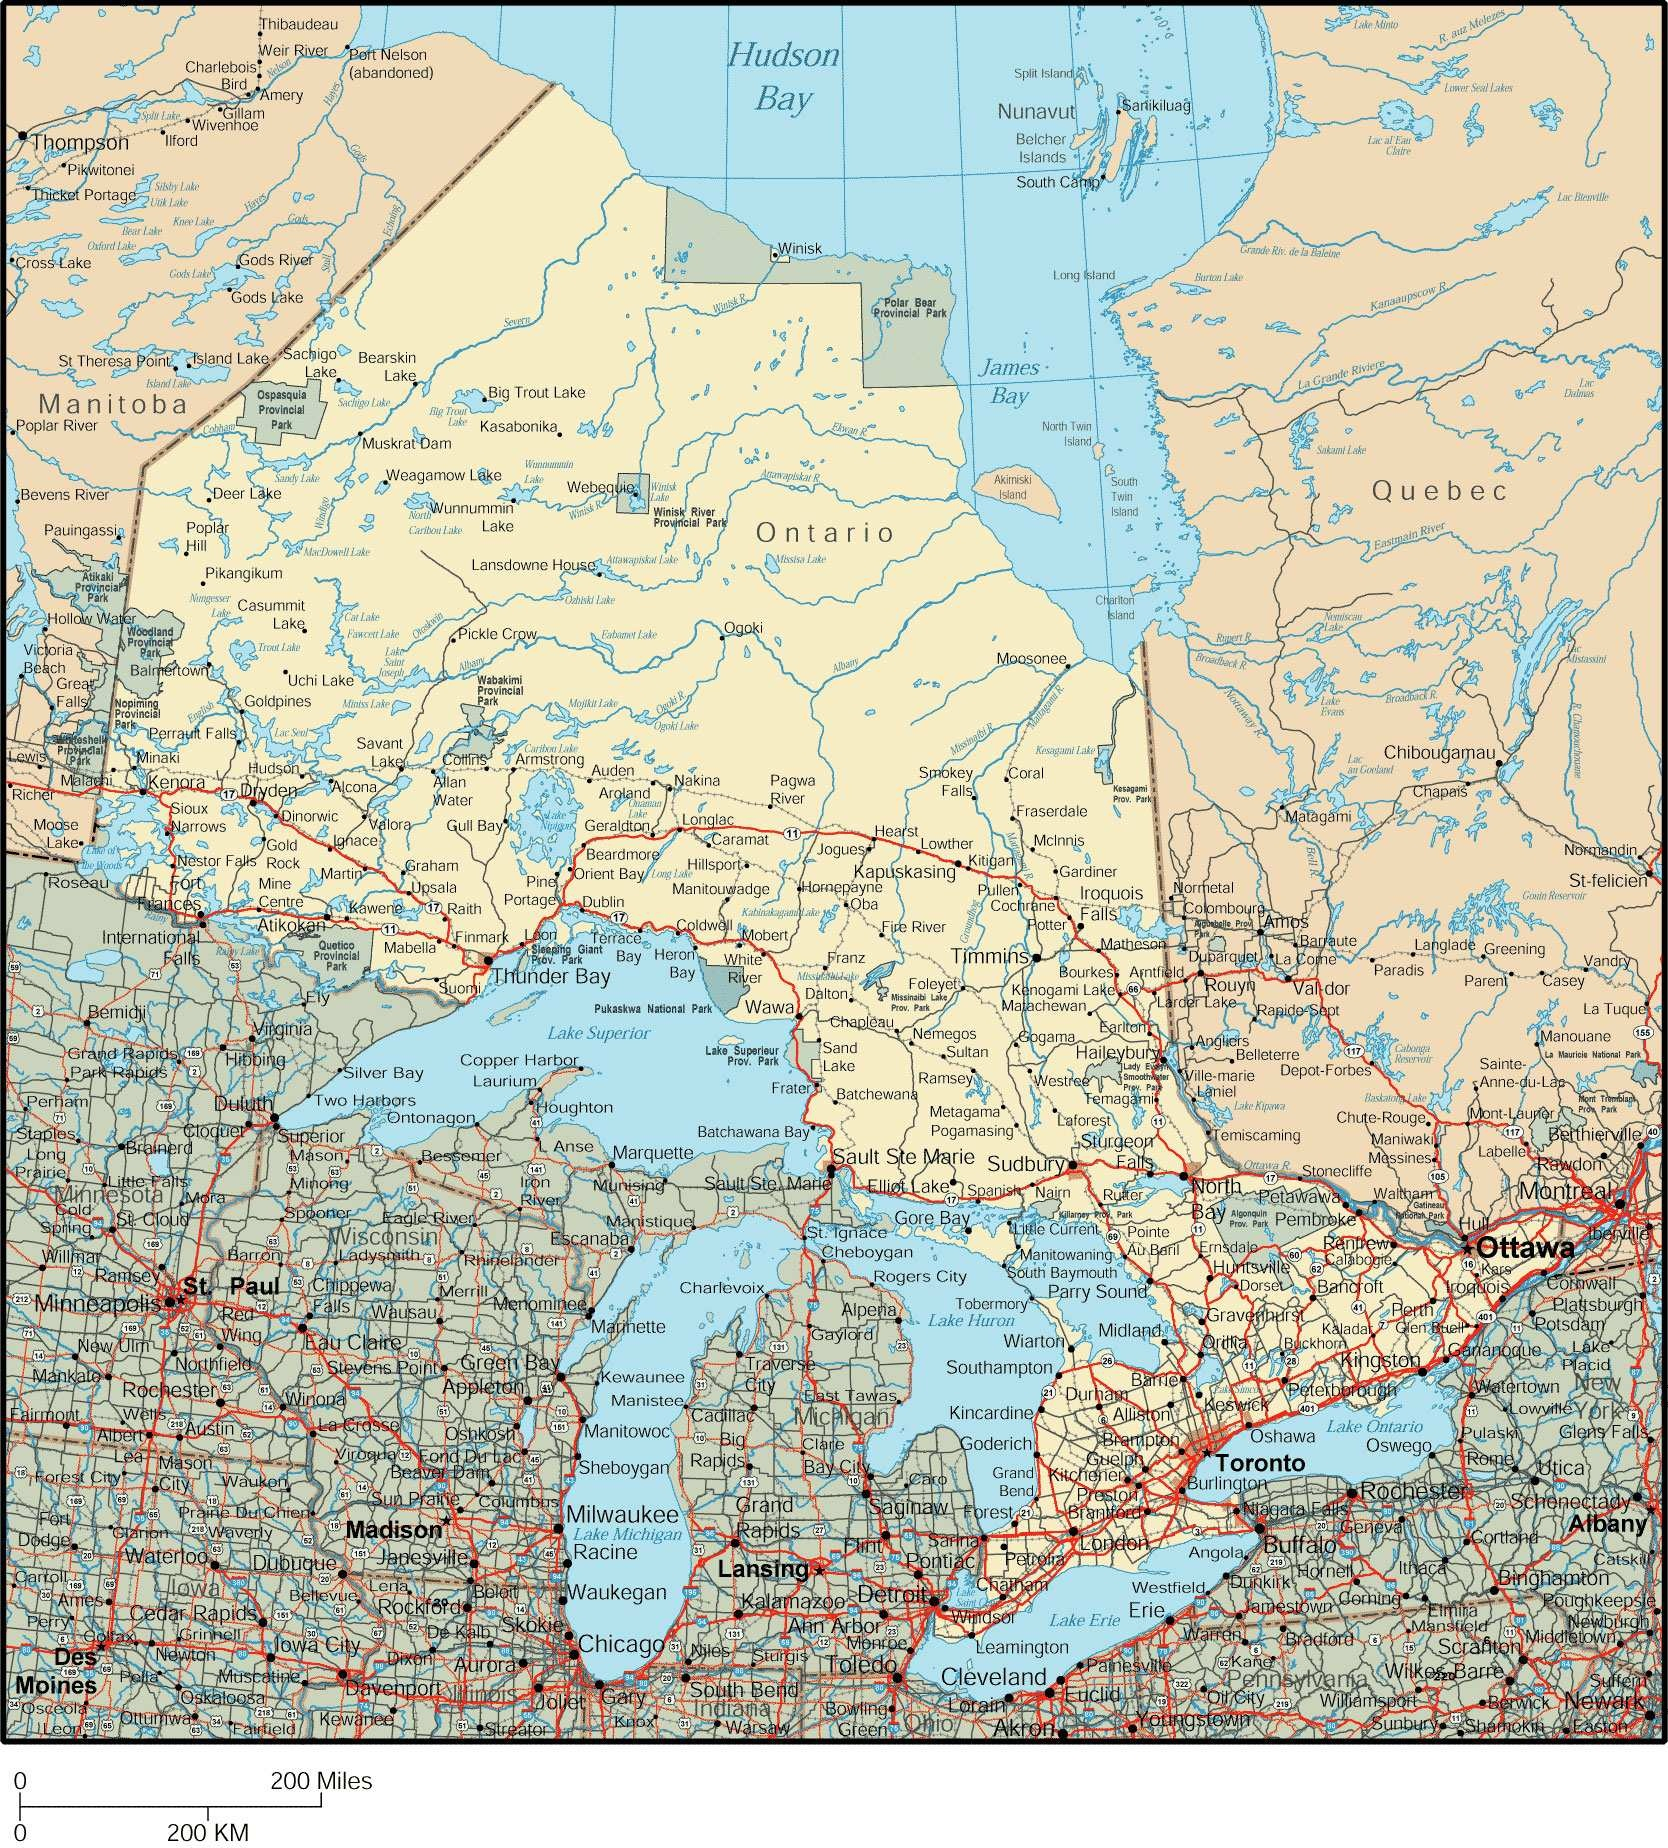 Large Ontario Town Maps For Free Download And Print | High - Free Printable Map Of Ontario